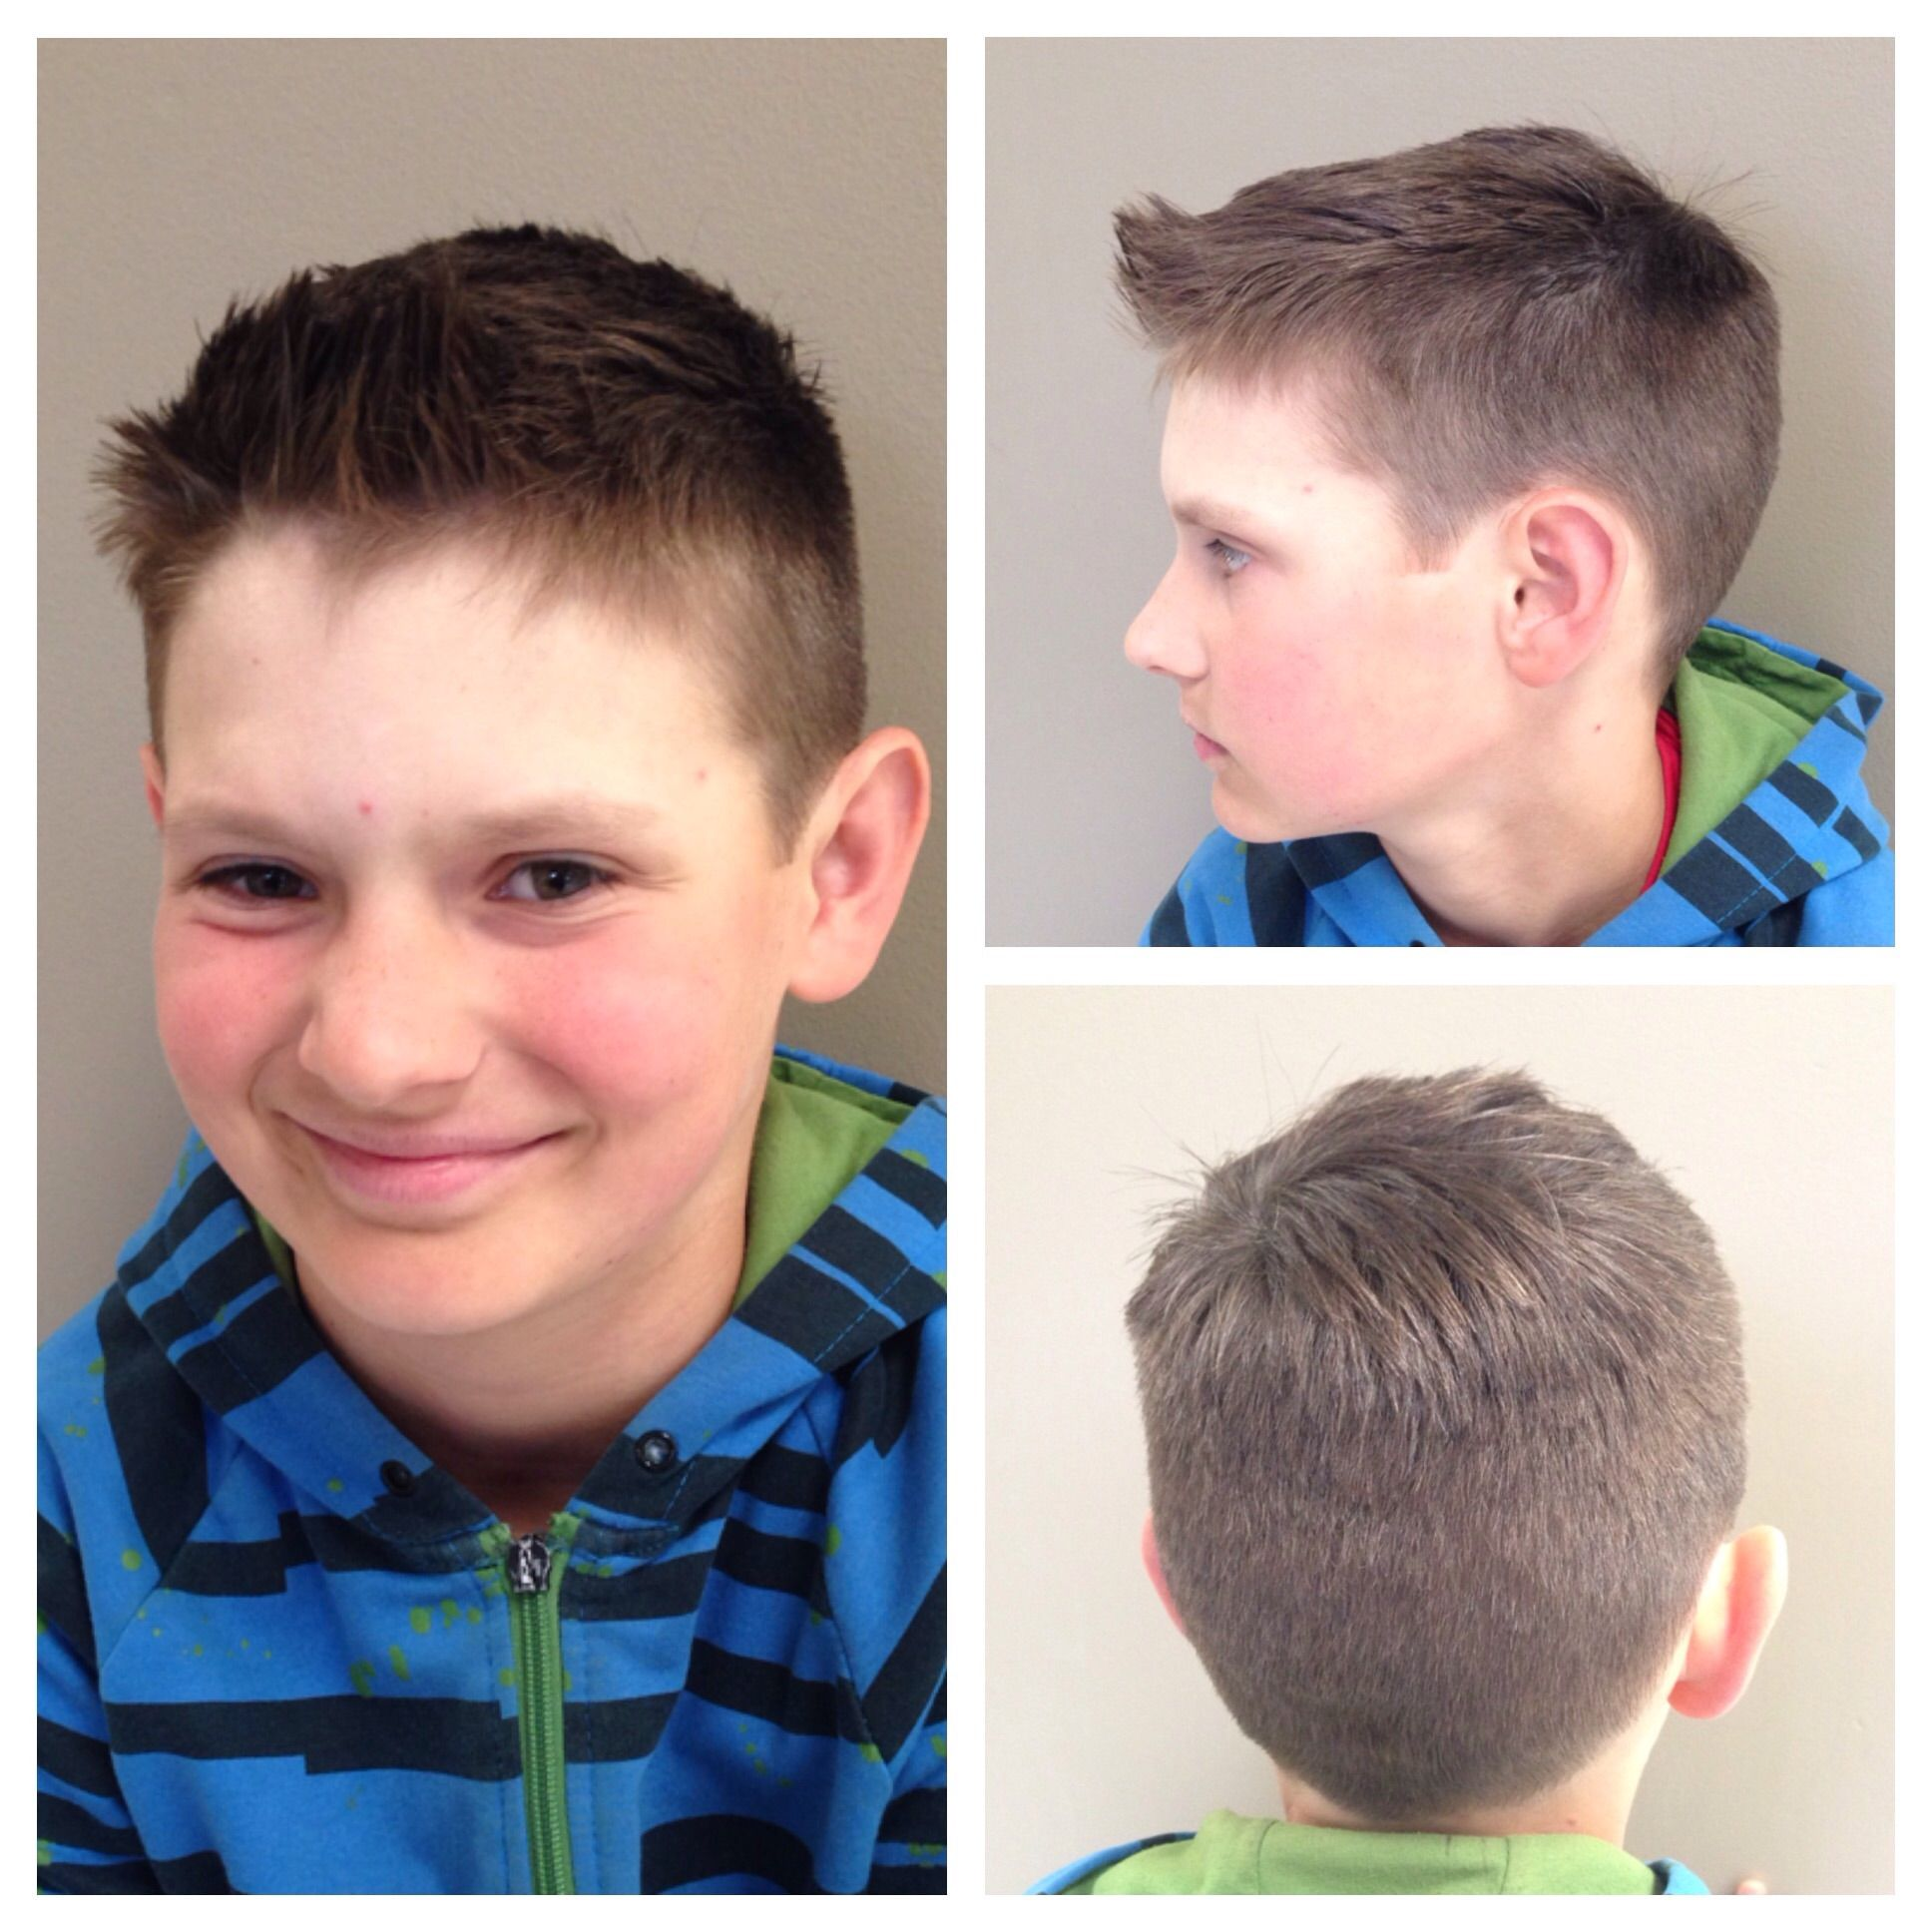 pin on the boy's hair